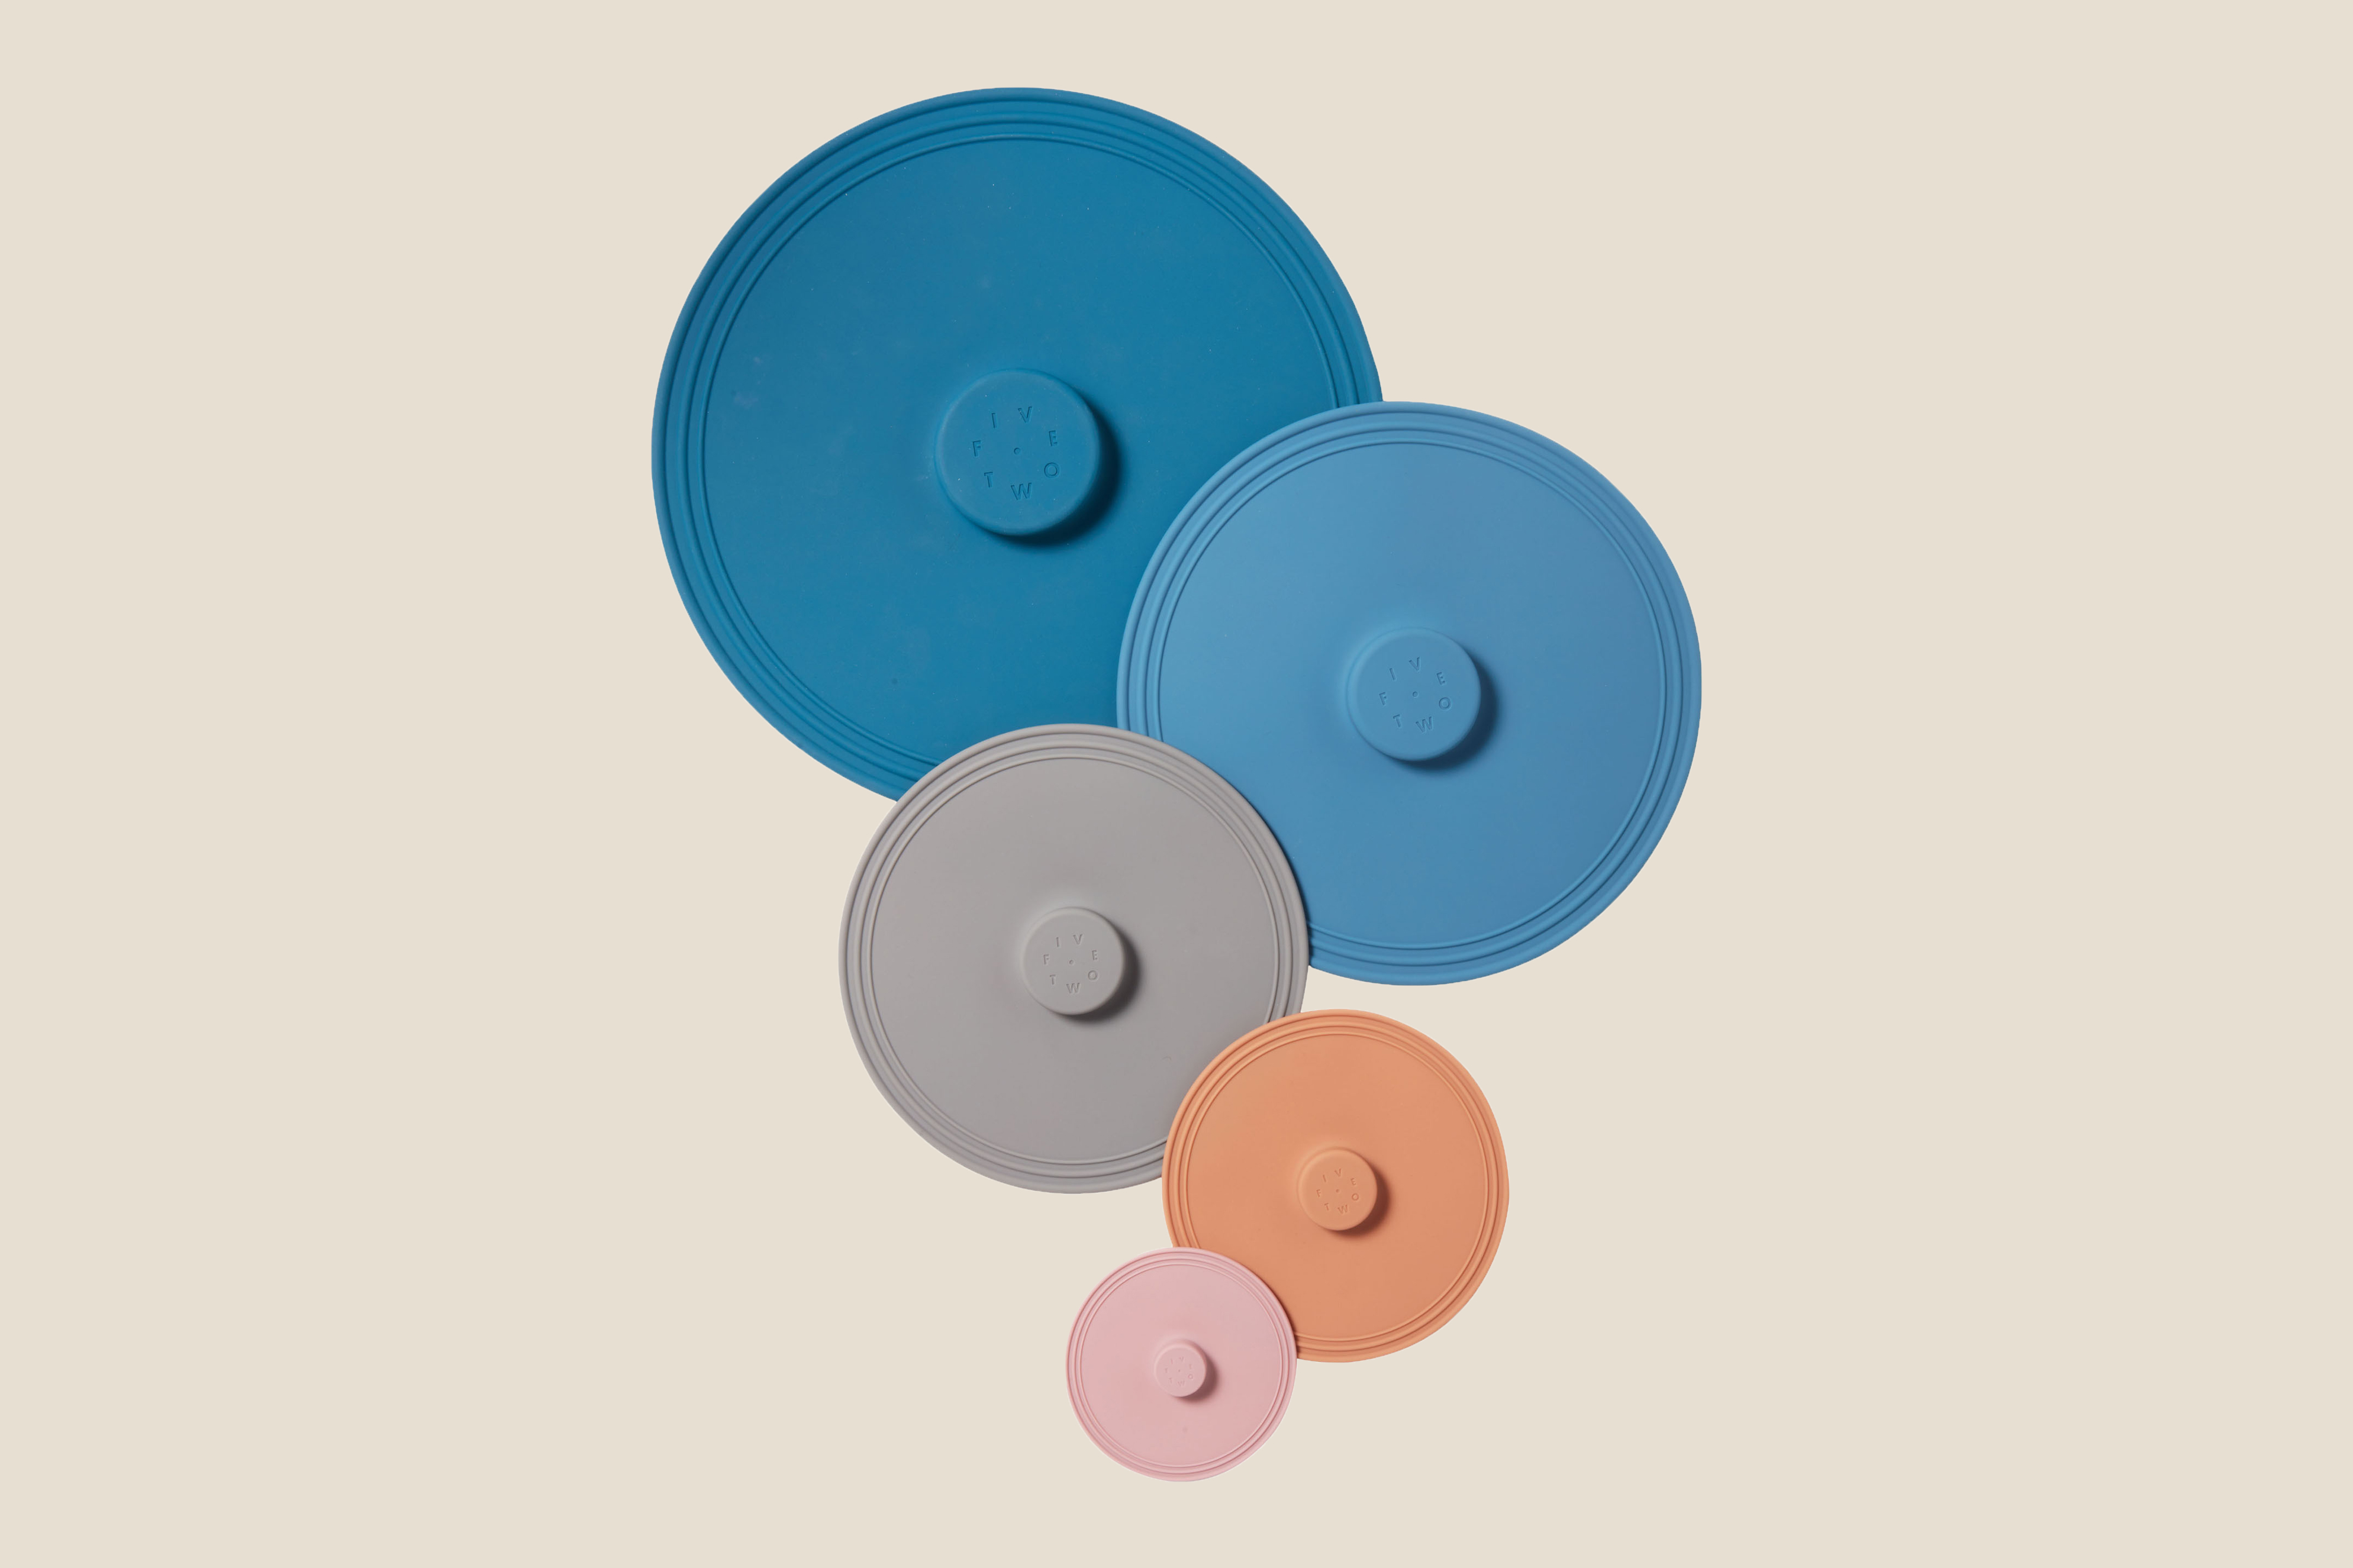 eco-friendly Food52 Five Two Airtight Silicone Lids